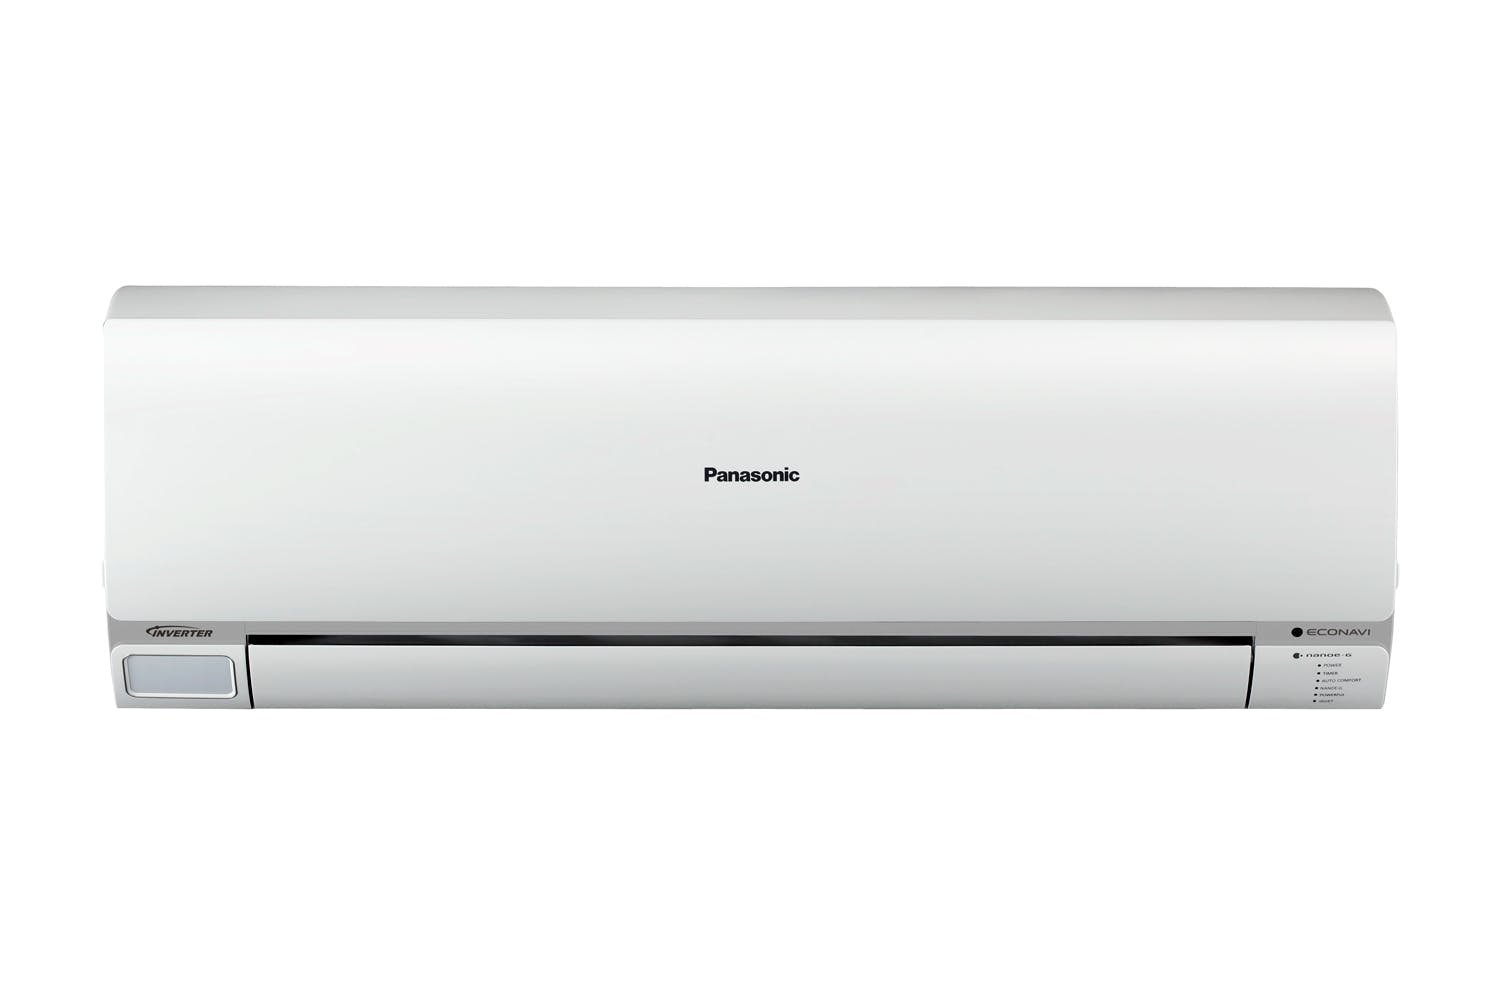 Panasonic CSCUS12PKR 3.5kW Cooling Only Inverter Air Conditioner - FREE Delivery & Price Match* image